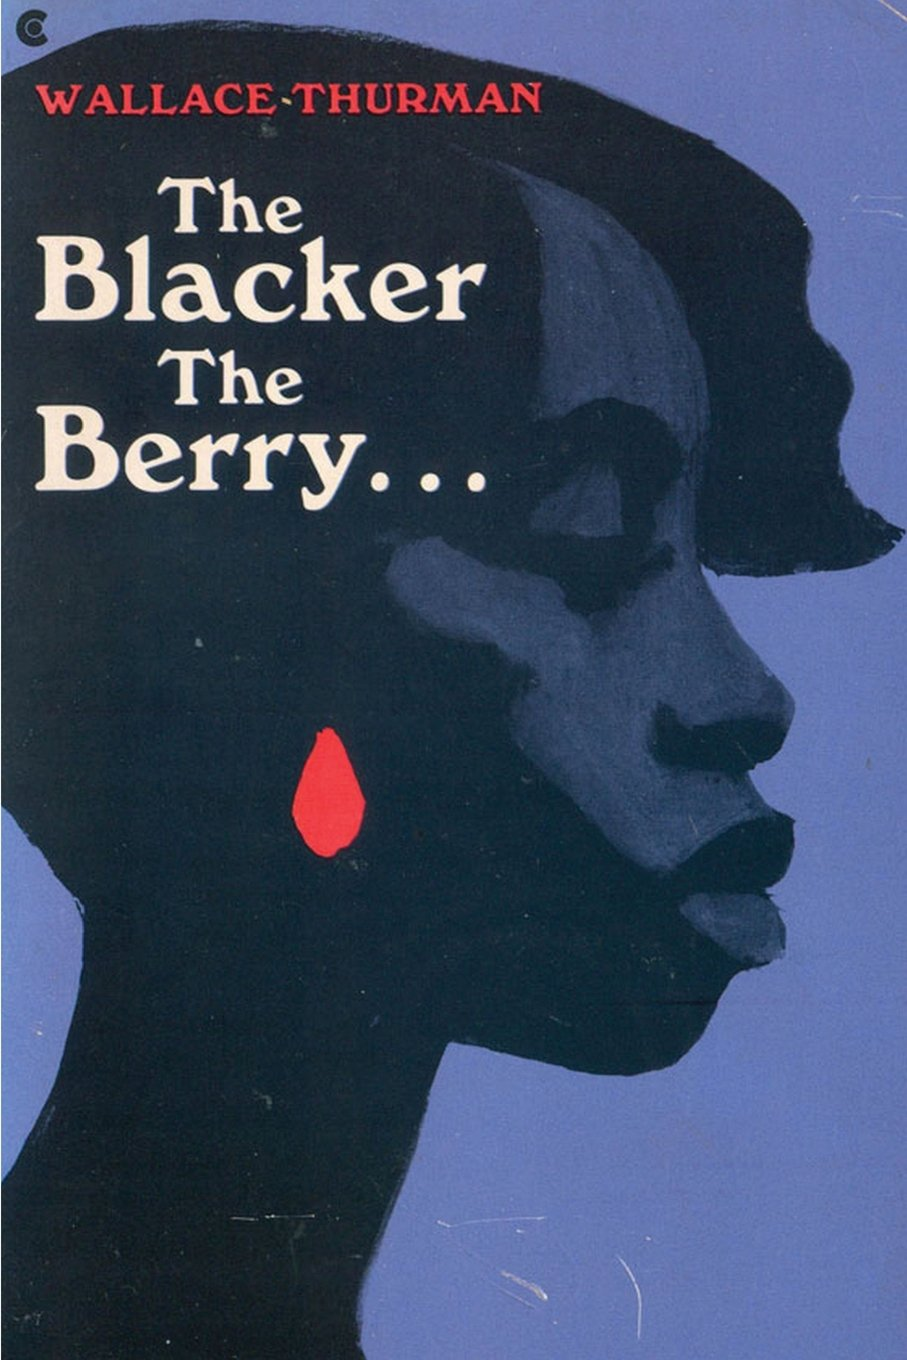 The Blacker The Berry - by Wallace Thurman